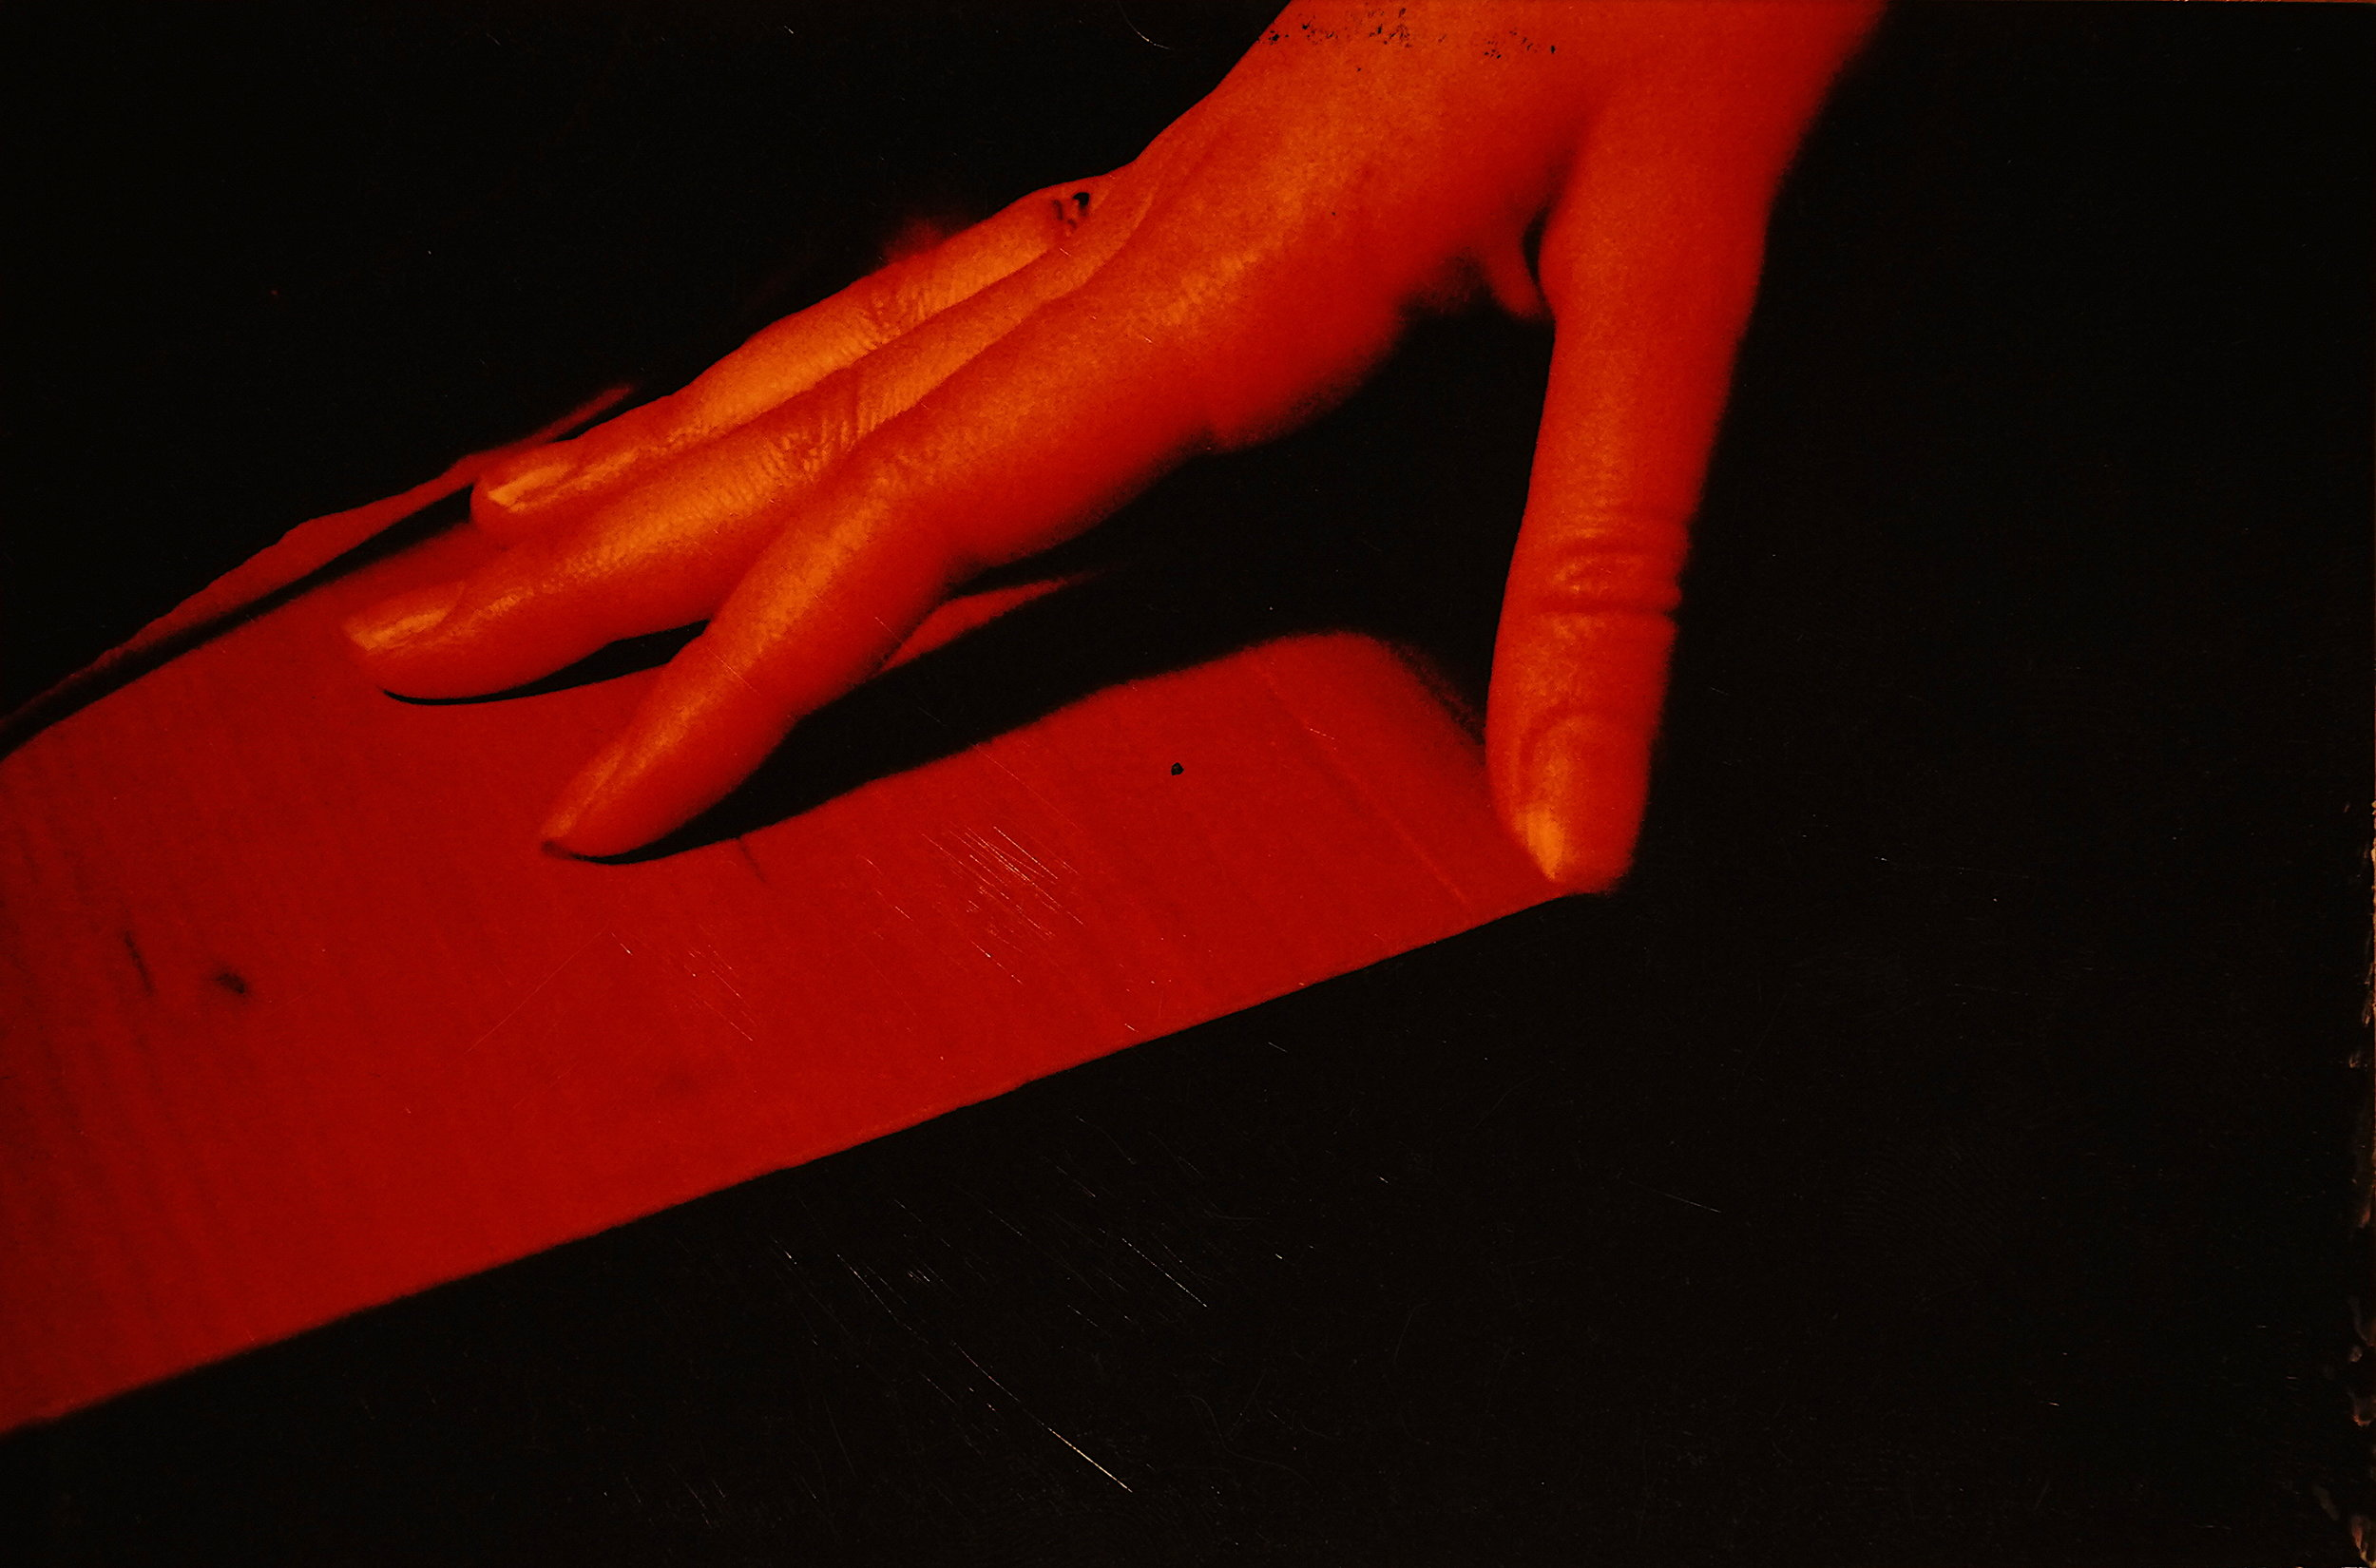 RED HAND (2004)